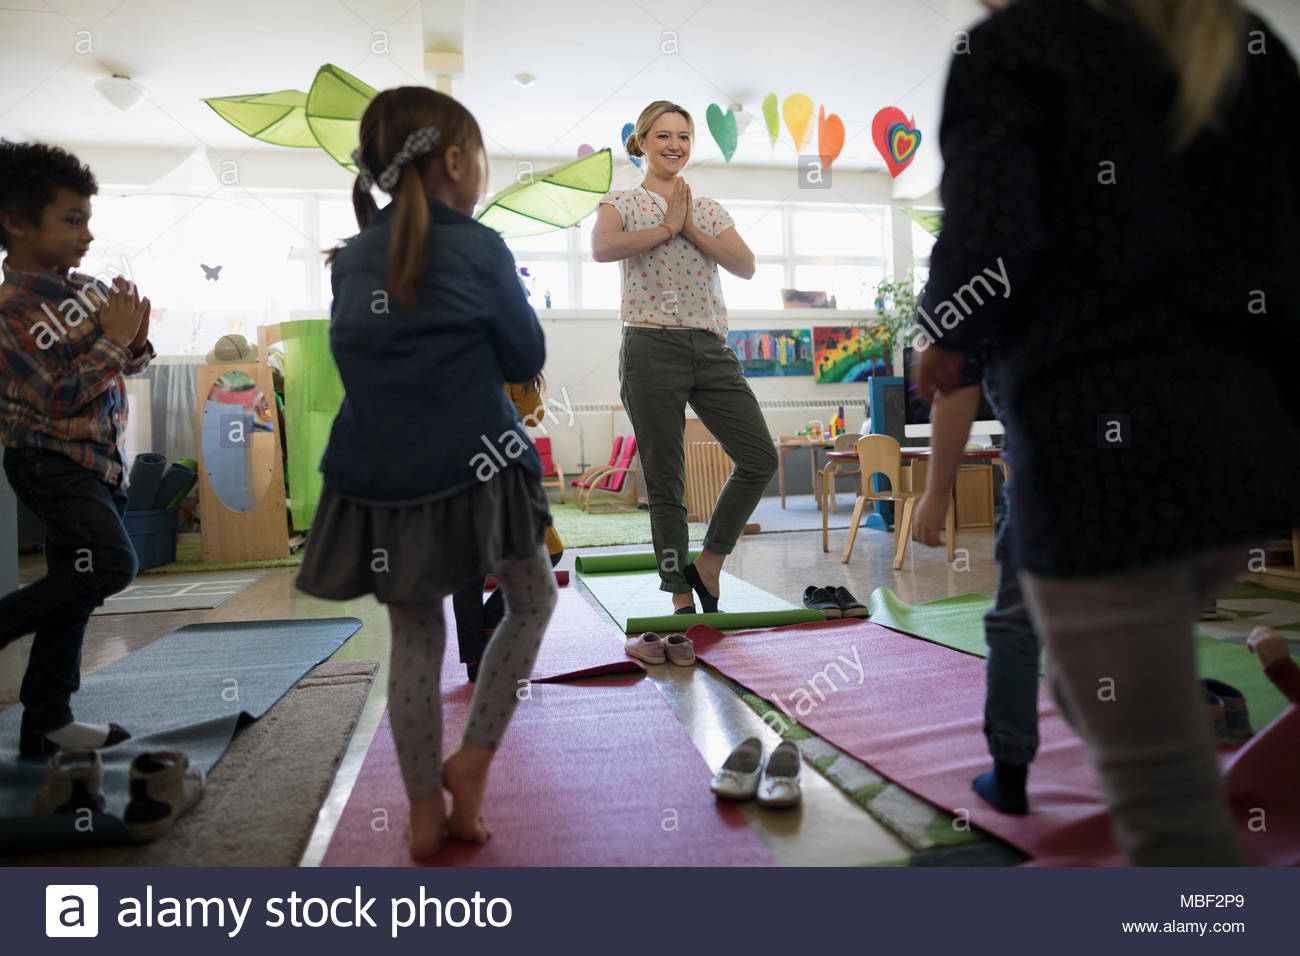 Preschool teacher and students practicing yoga tree pose in classroom - Stock Image